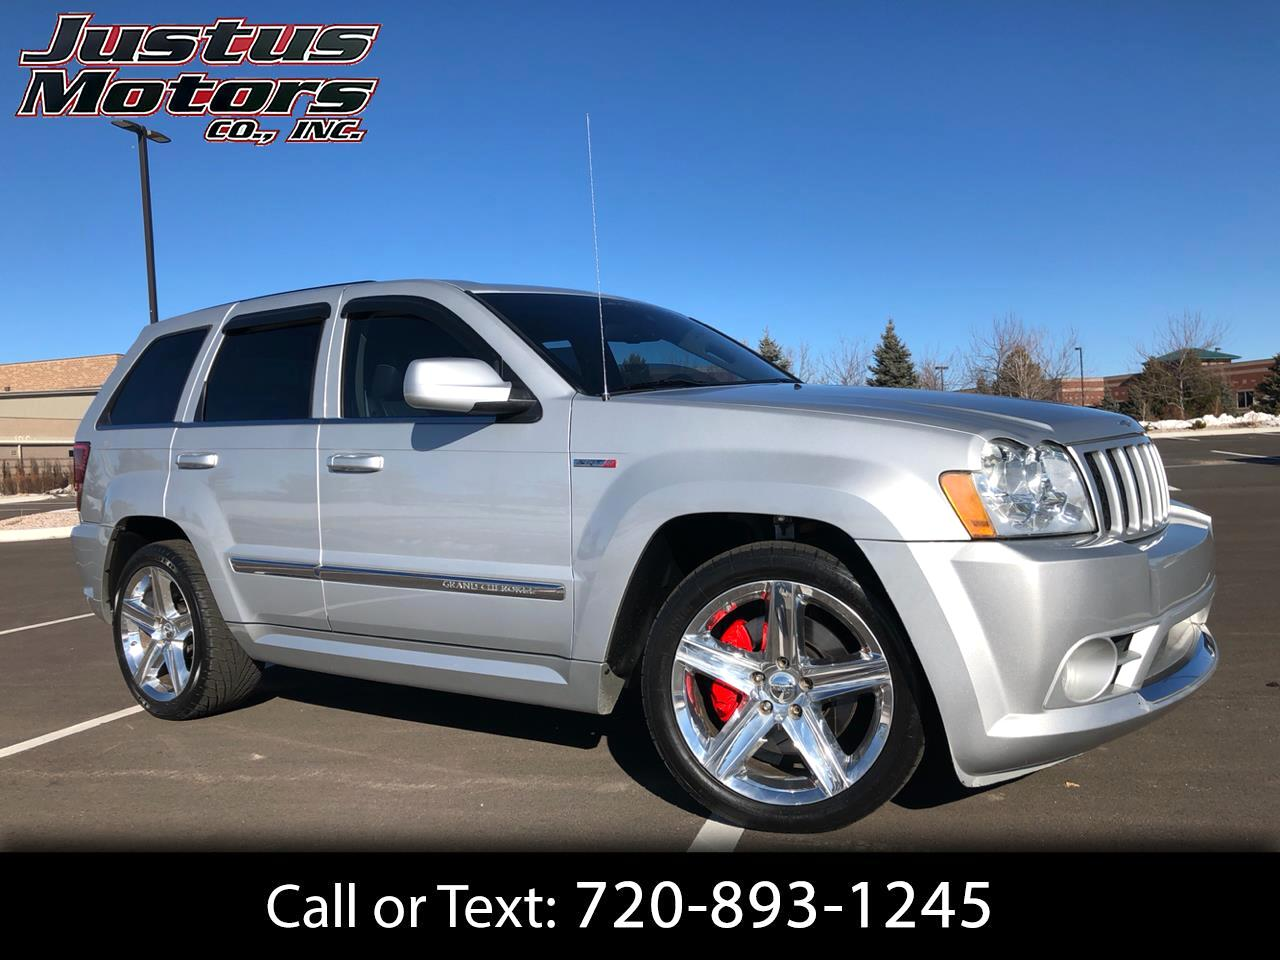 2007 Jeep Grand Cherokee SRT-8 SRT-8